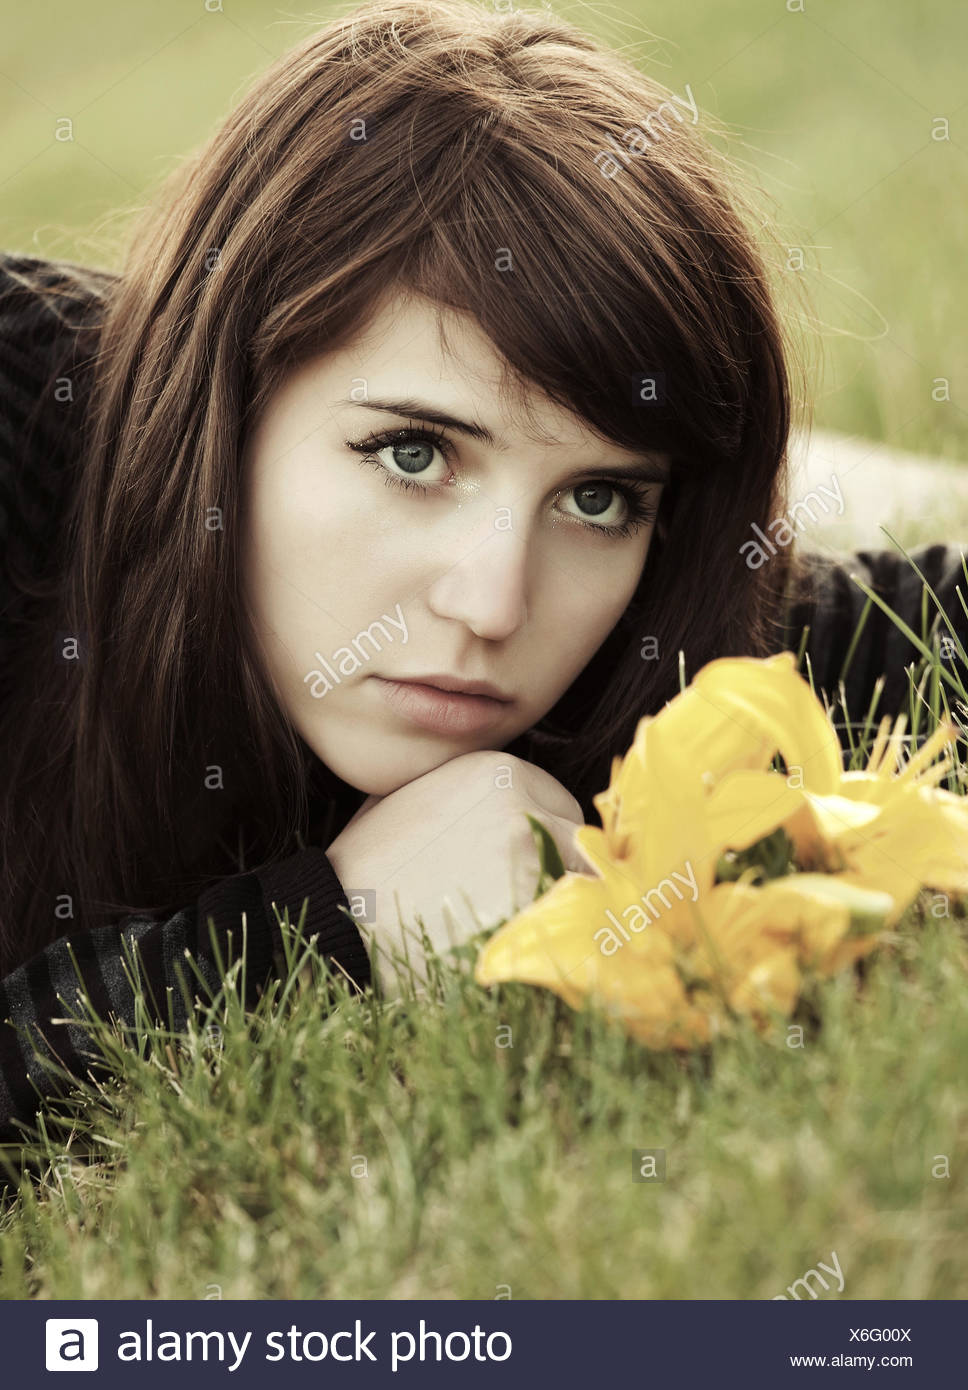 Sad young woman with a flowers lying on the grass - Stock Image